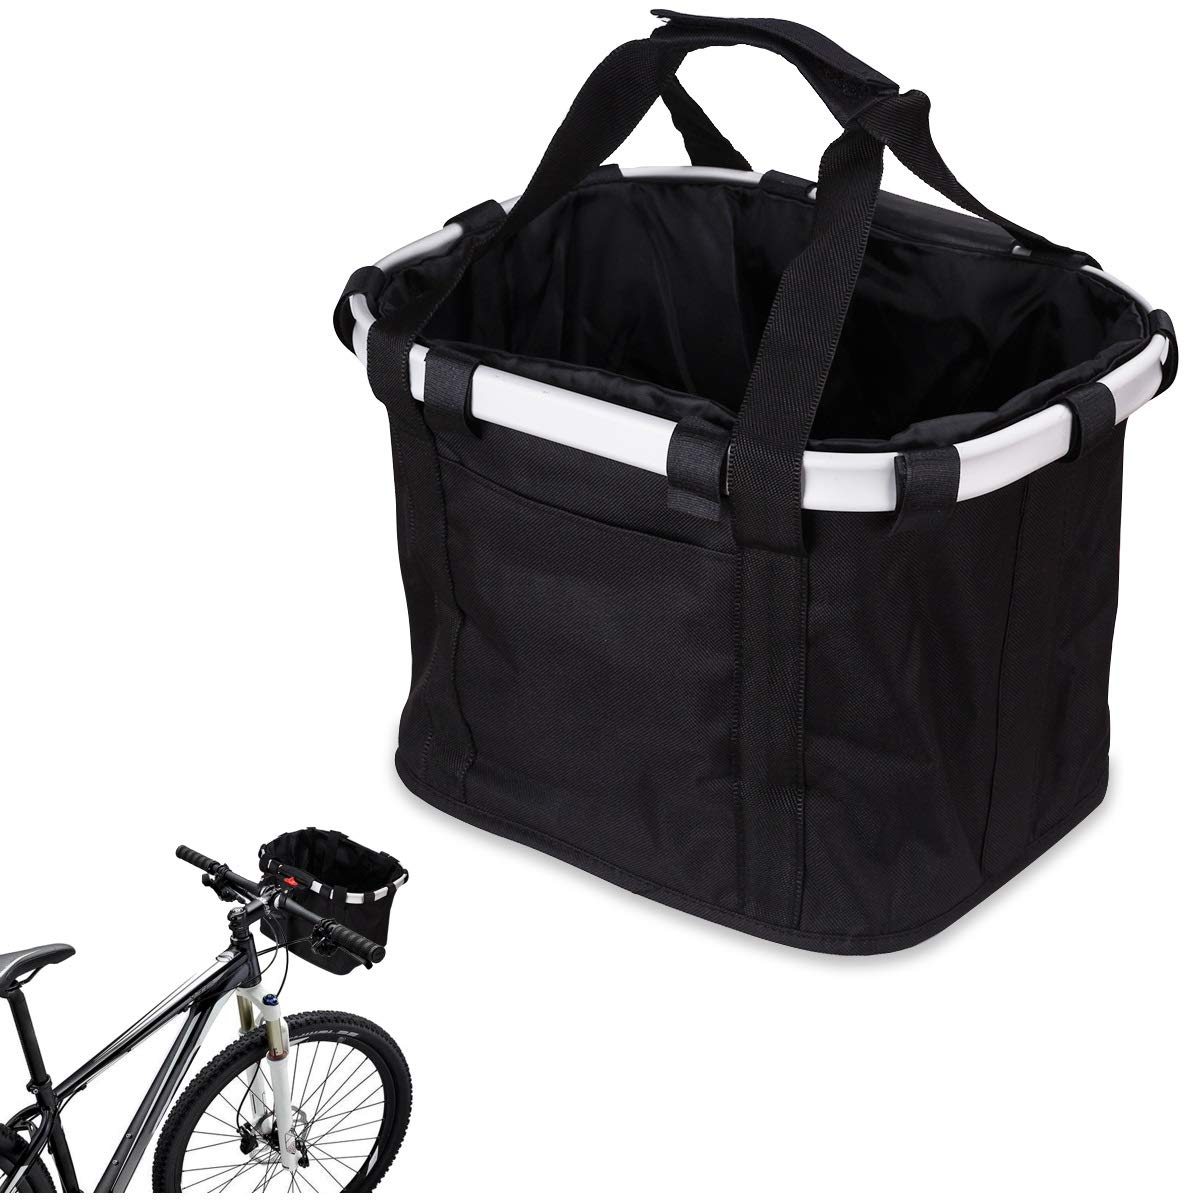 Mini-Factory Bicycle Basket for Bike Handlebar, Foldable Basket with Detach Button and Hand Carrying Strap - Black